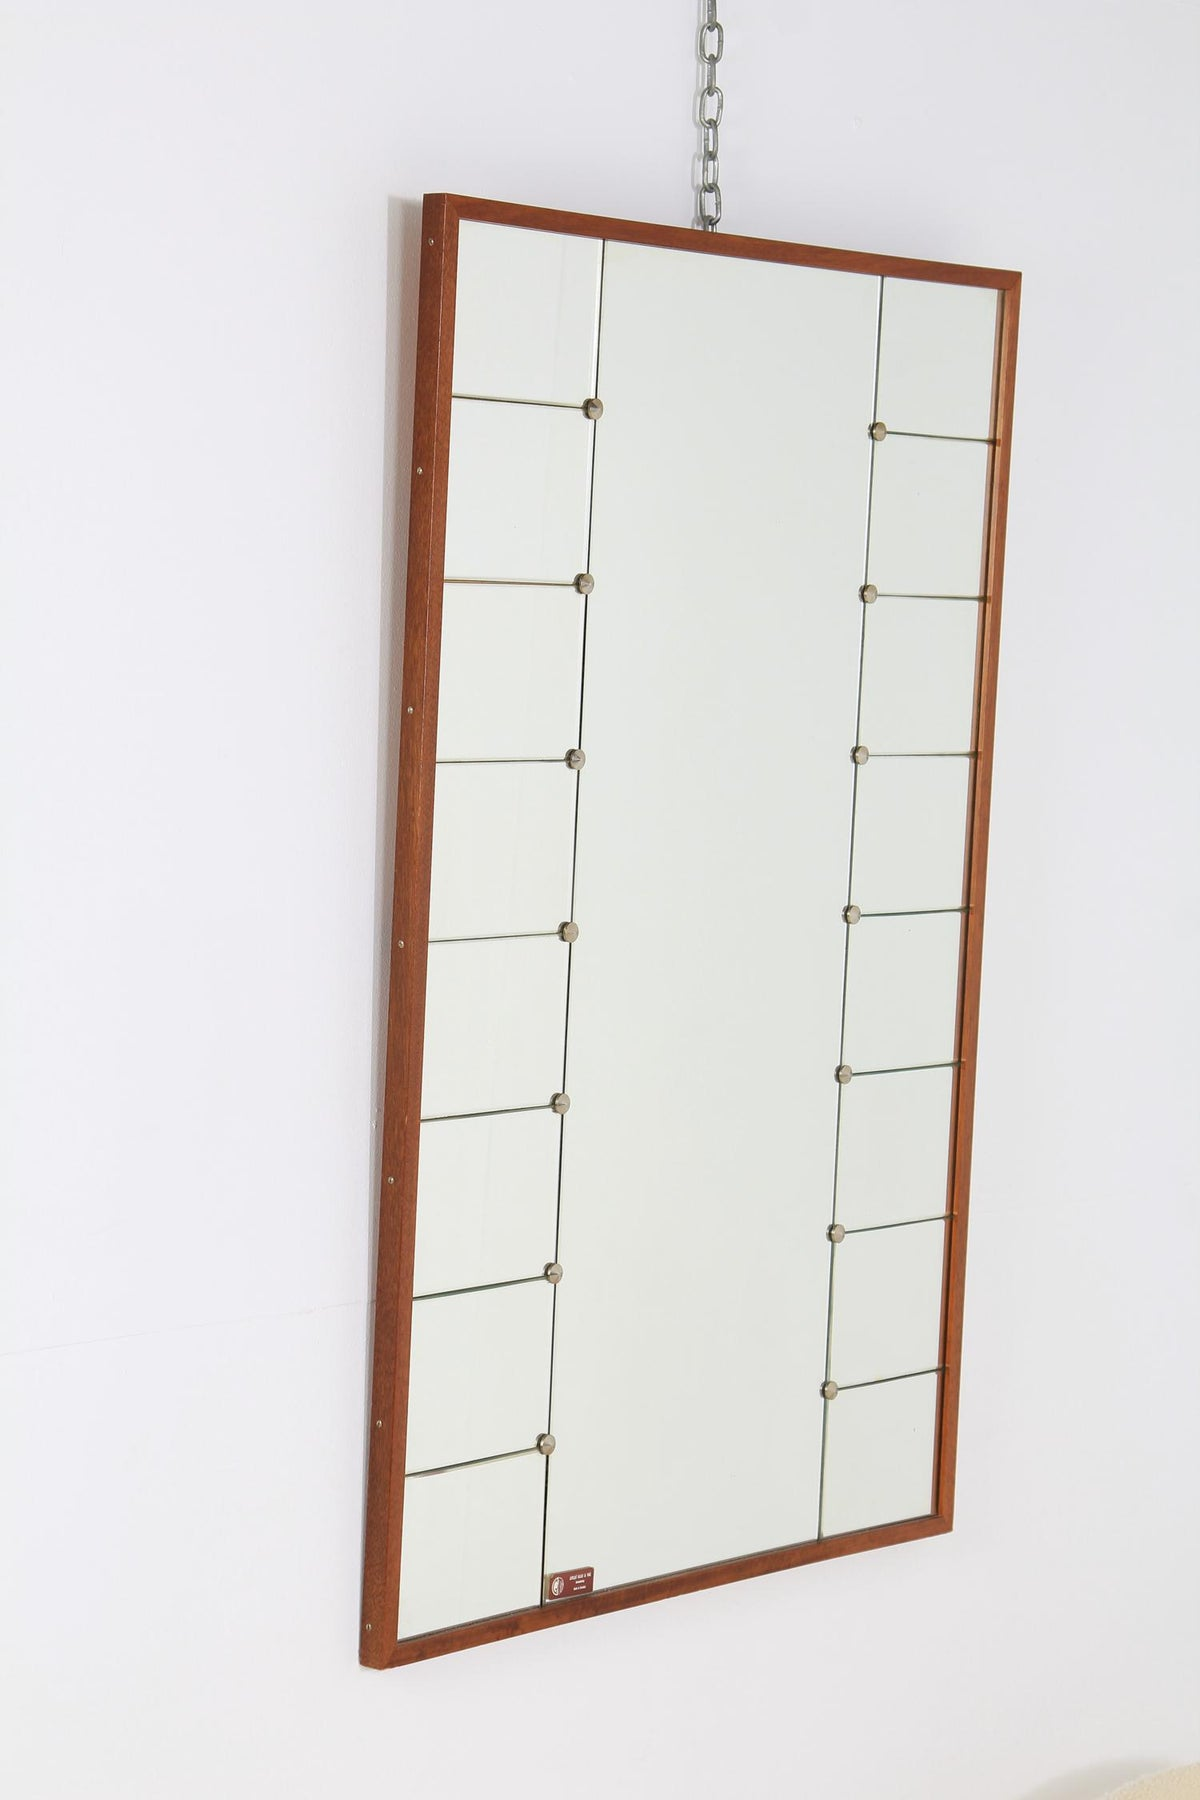 Large Swedish Mid-20th Century Deco Inspired Wall Mirror